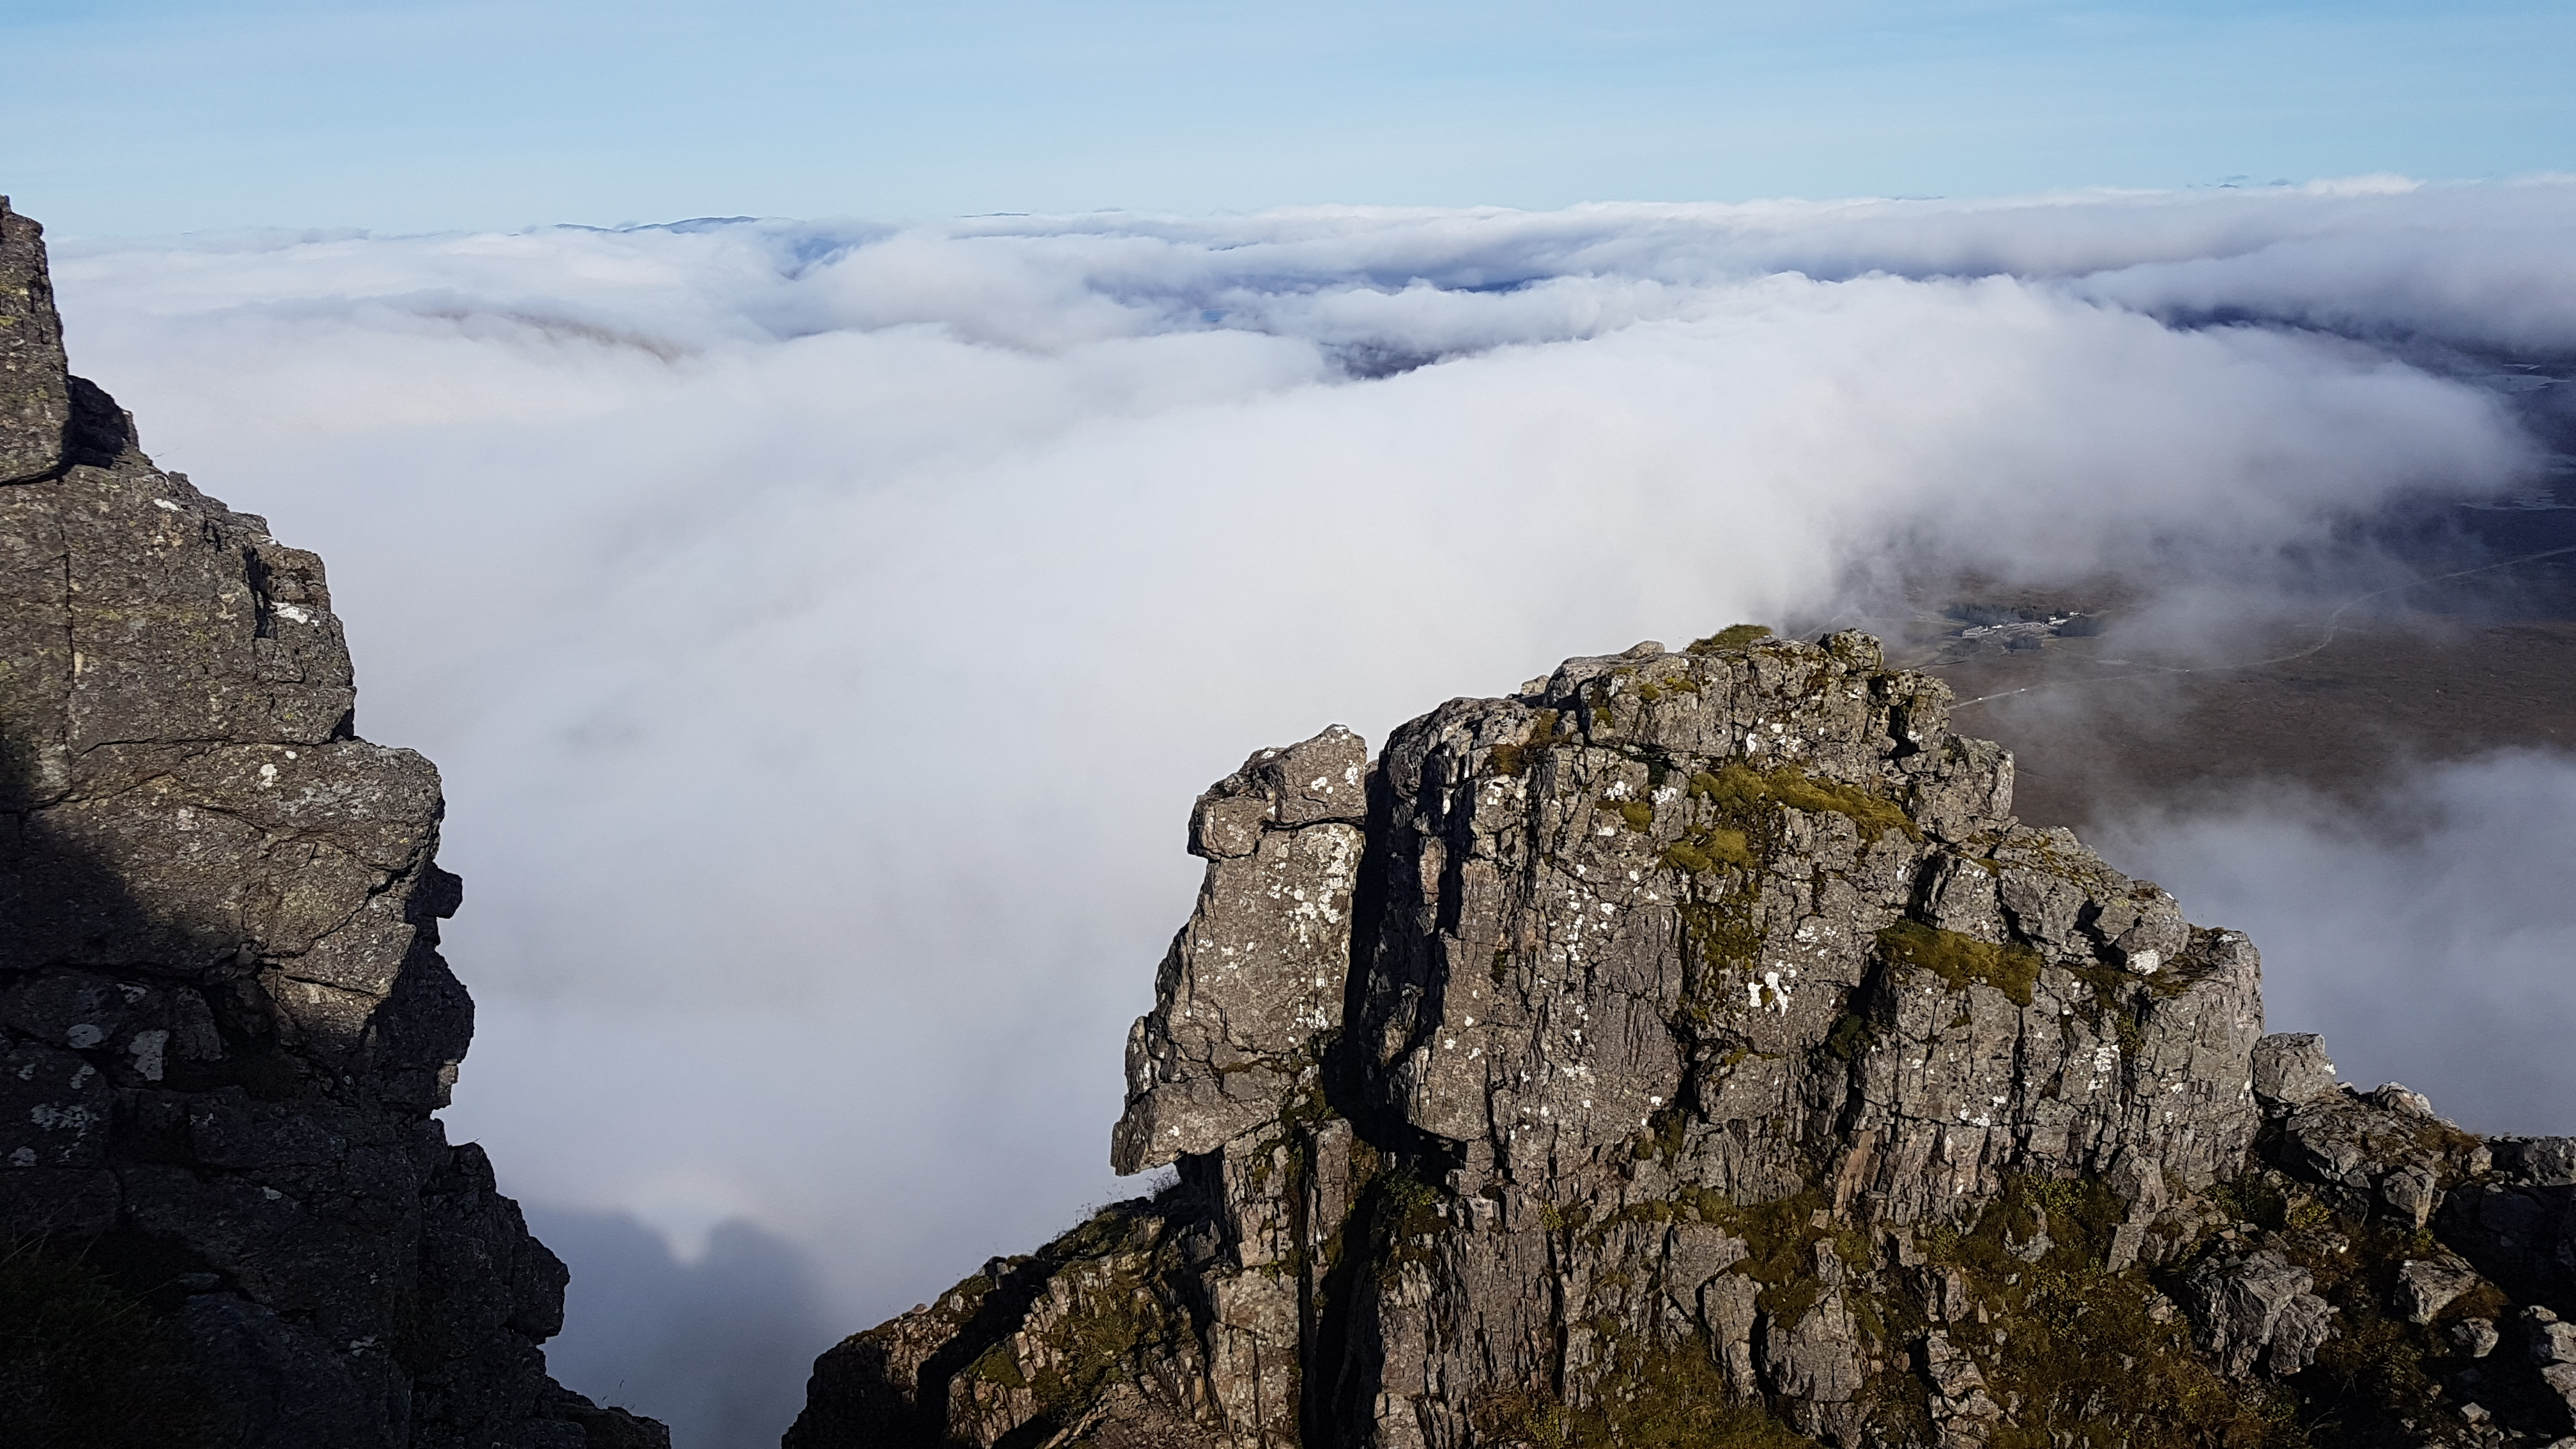 Stunning views on Curved Ridge, Glencoe with a Curved Ridge Guide from Lochaber Guides.